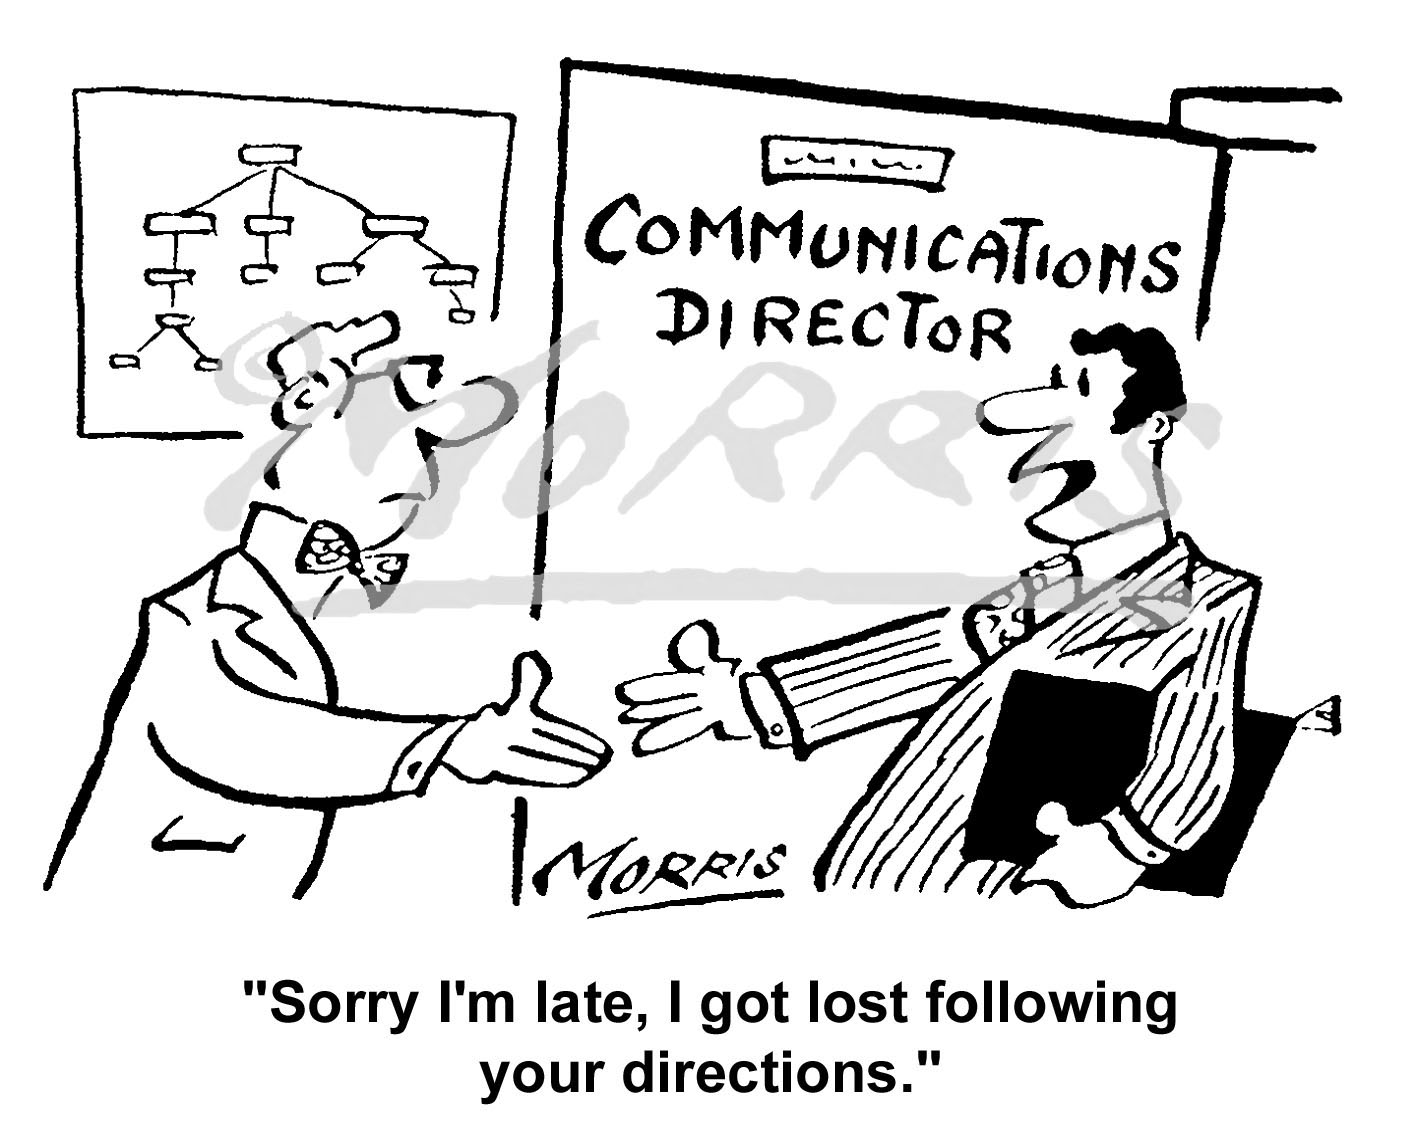 Communications Director comic cartoon – Ref: 5856bw